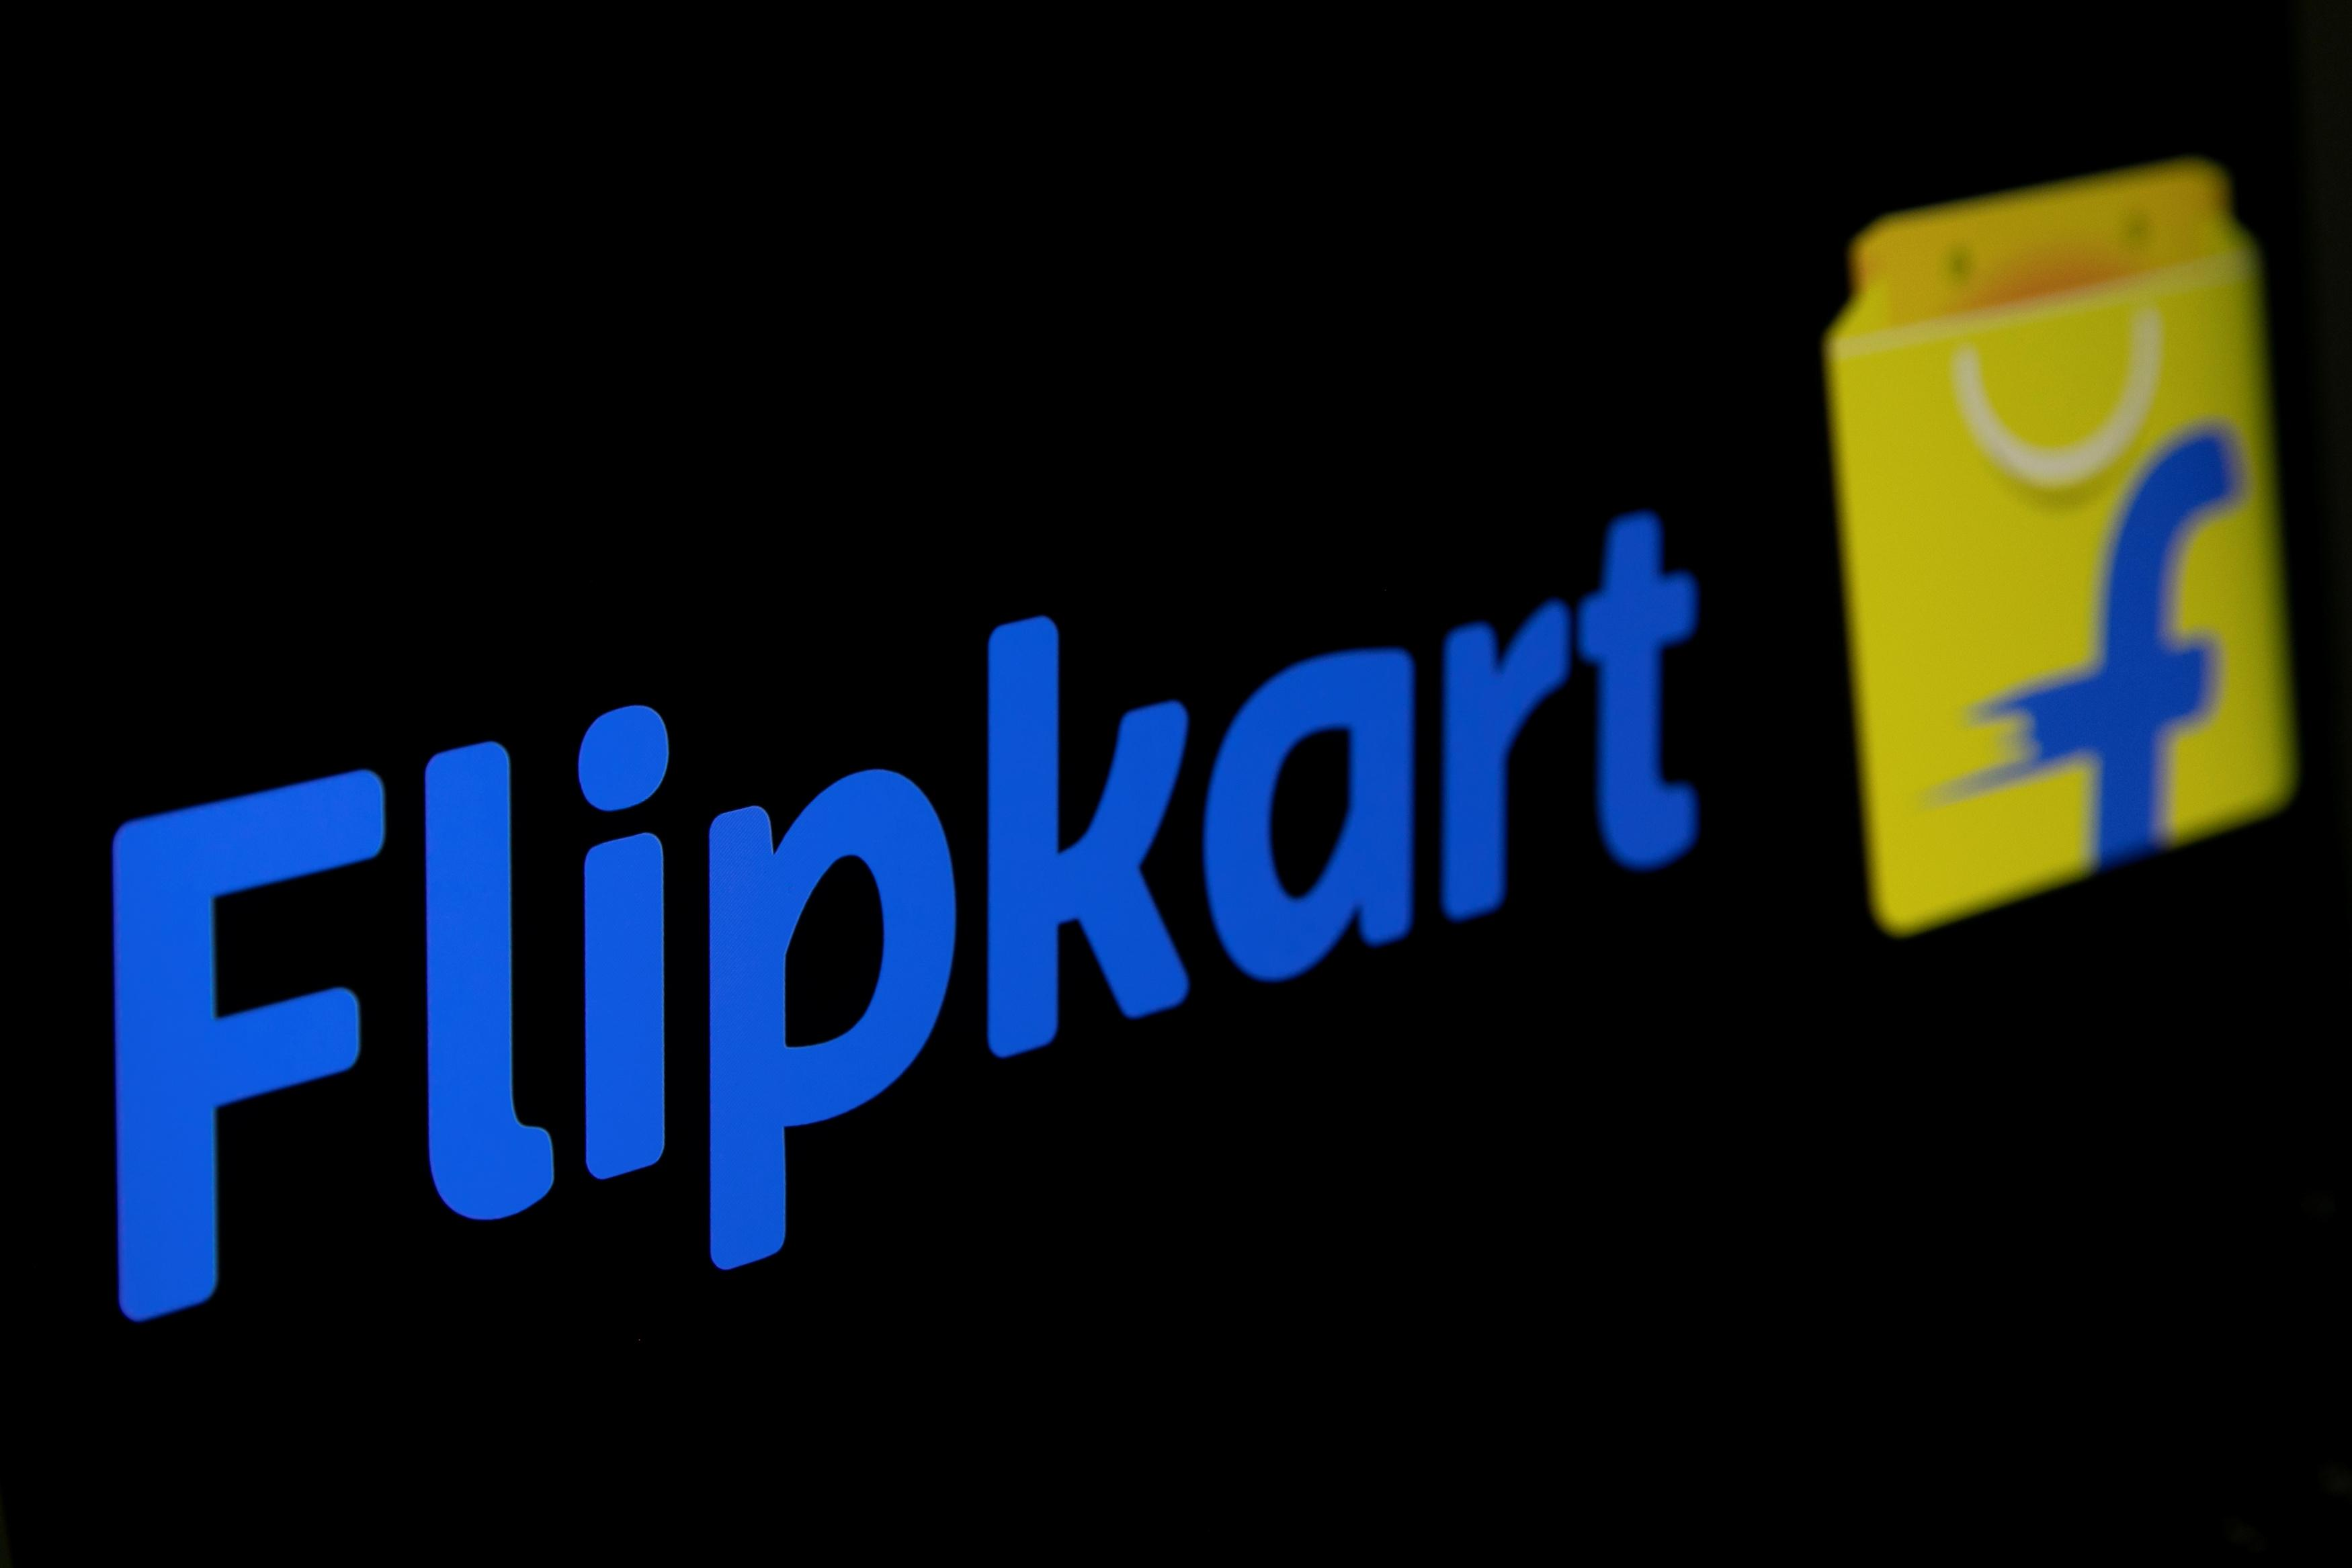 The logo of India's e-commerce firm Flipkart is seen in this illustration picture taken January 29, 2019. Danish Siddiqui/Illustration